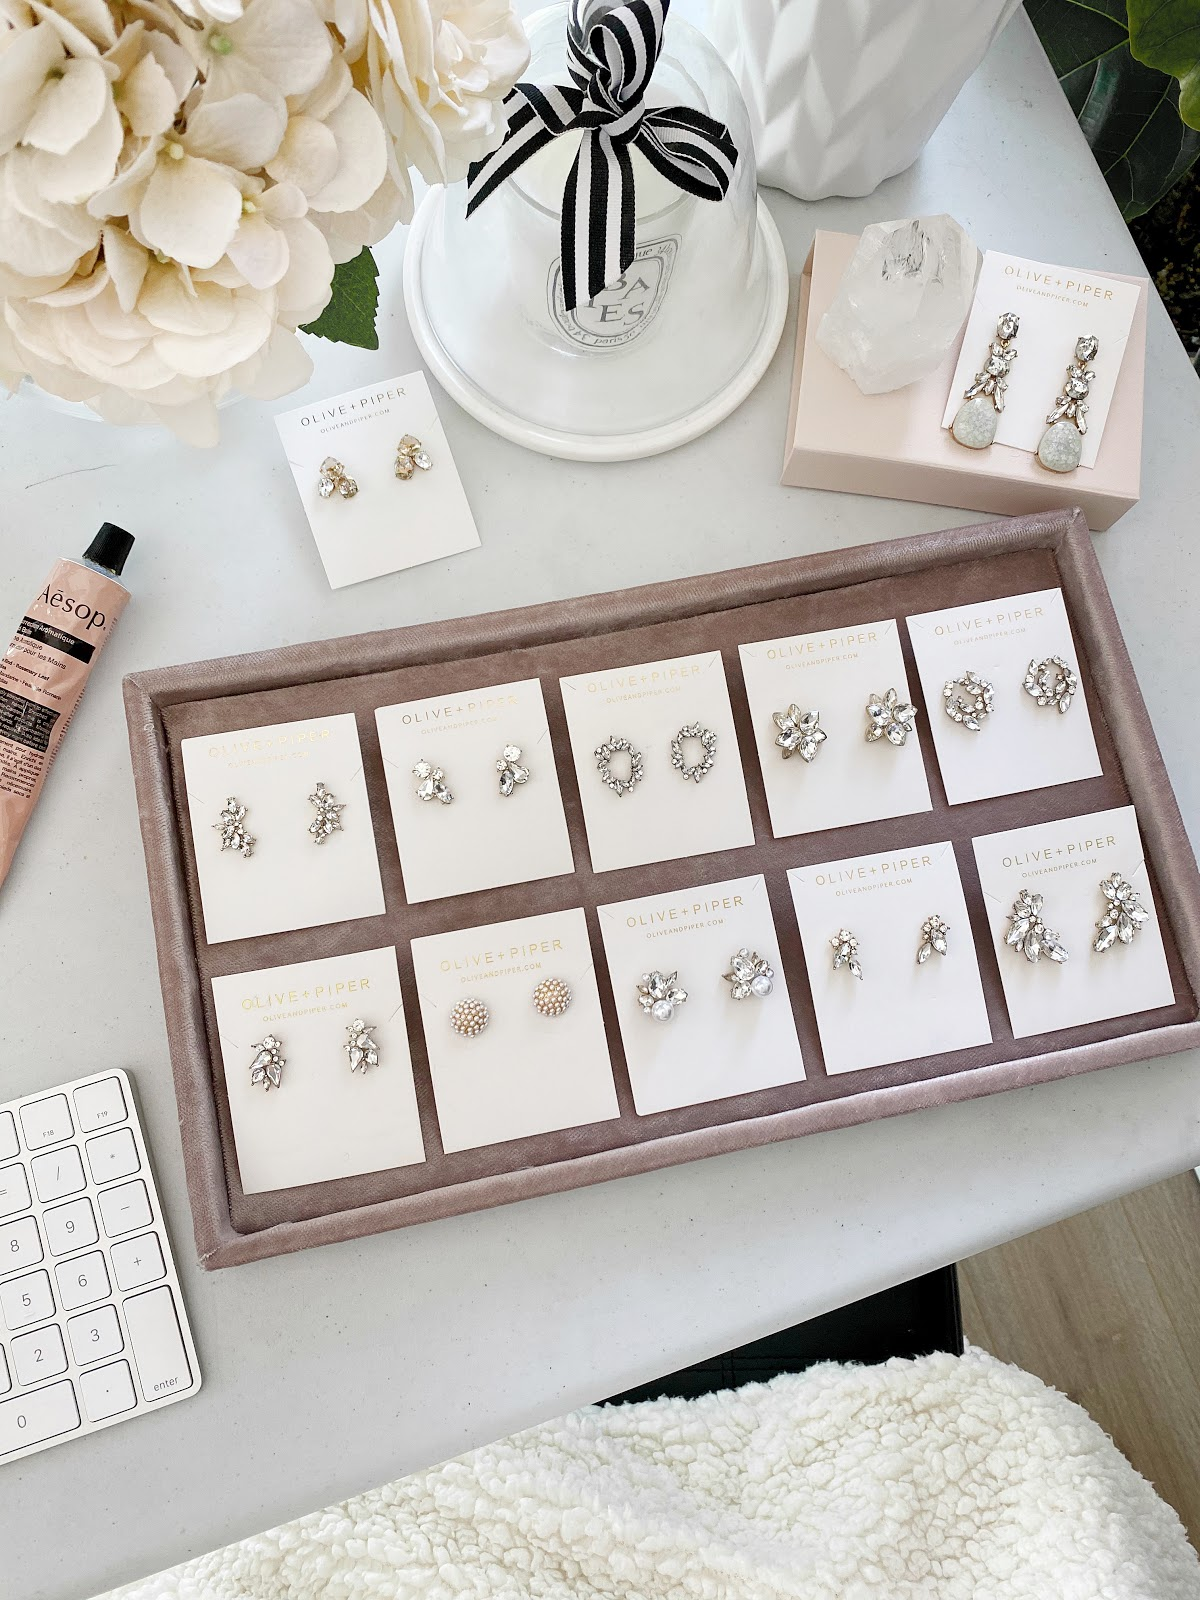 on-starting-a-versatile-and-timeless-jewelry-business